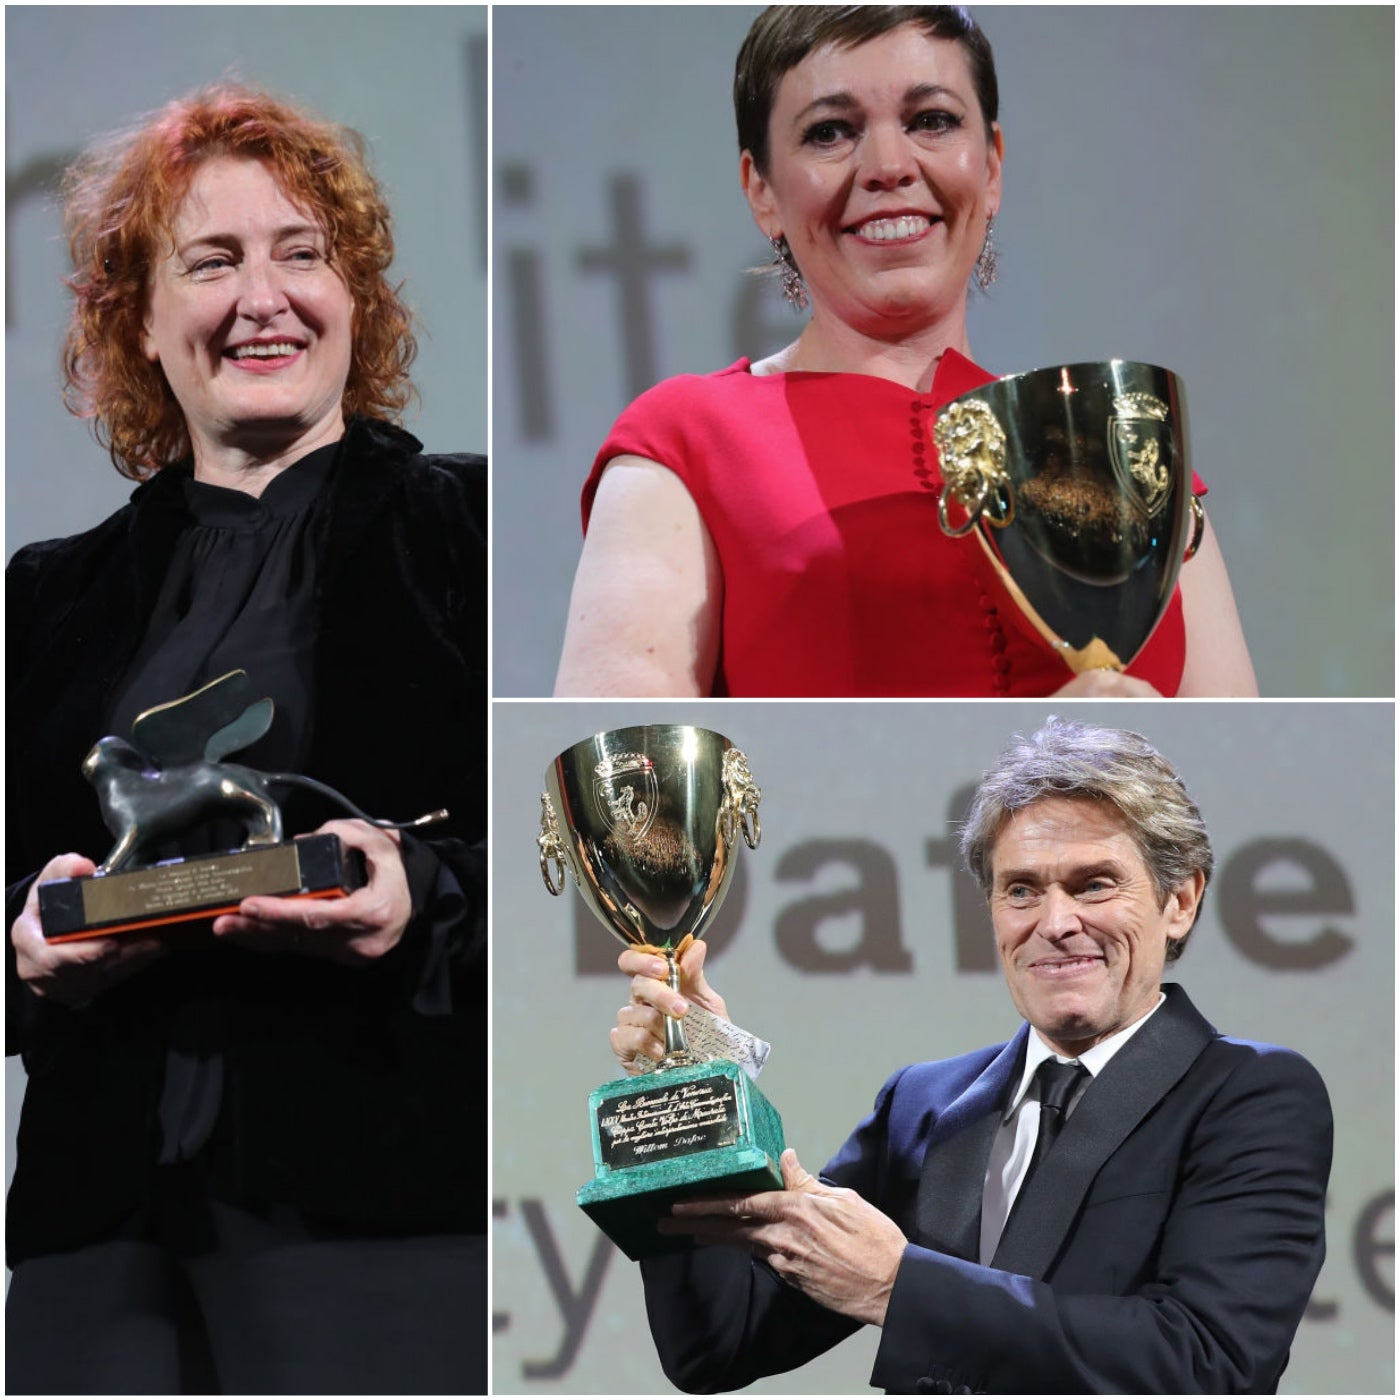 Winners of the 2018 Venice Film Festival